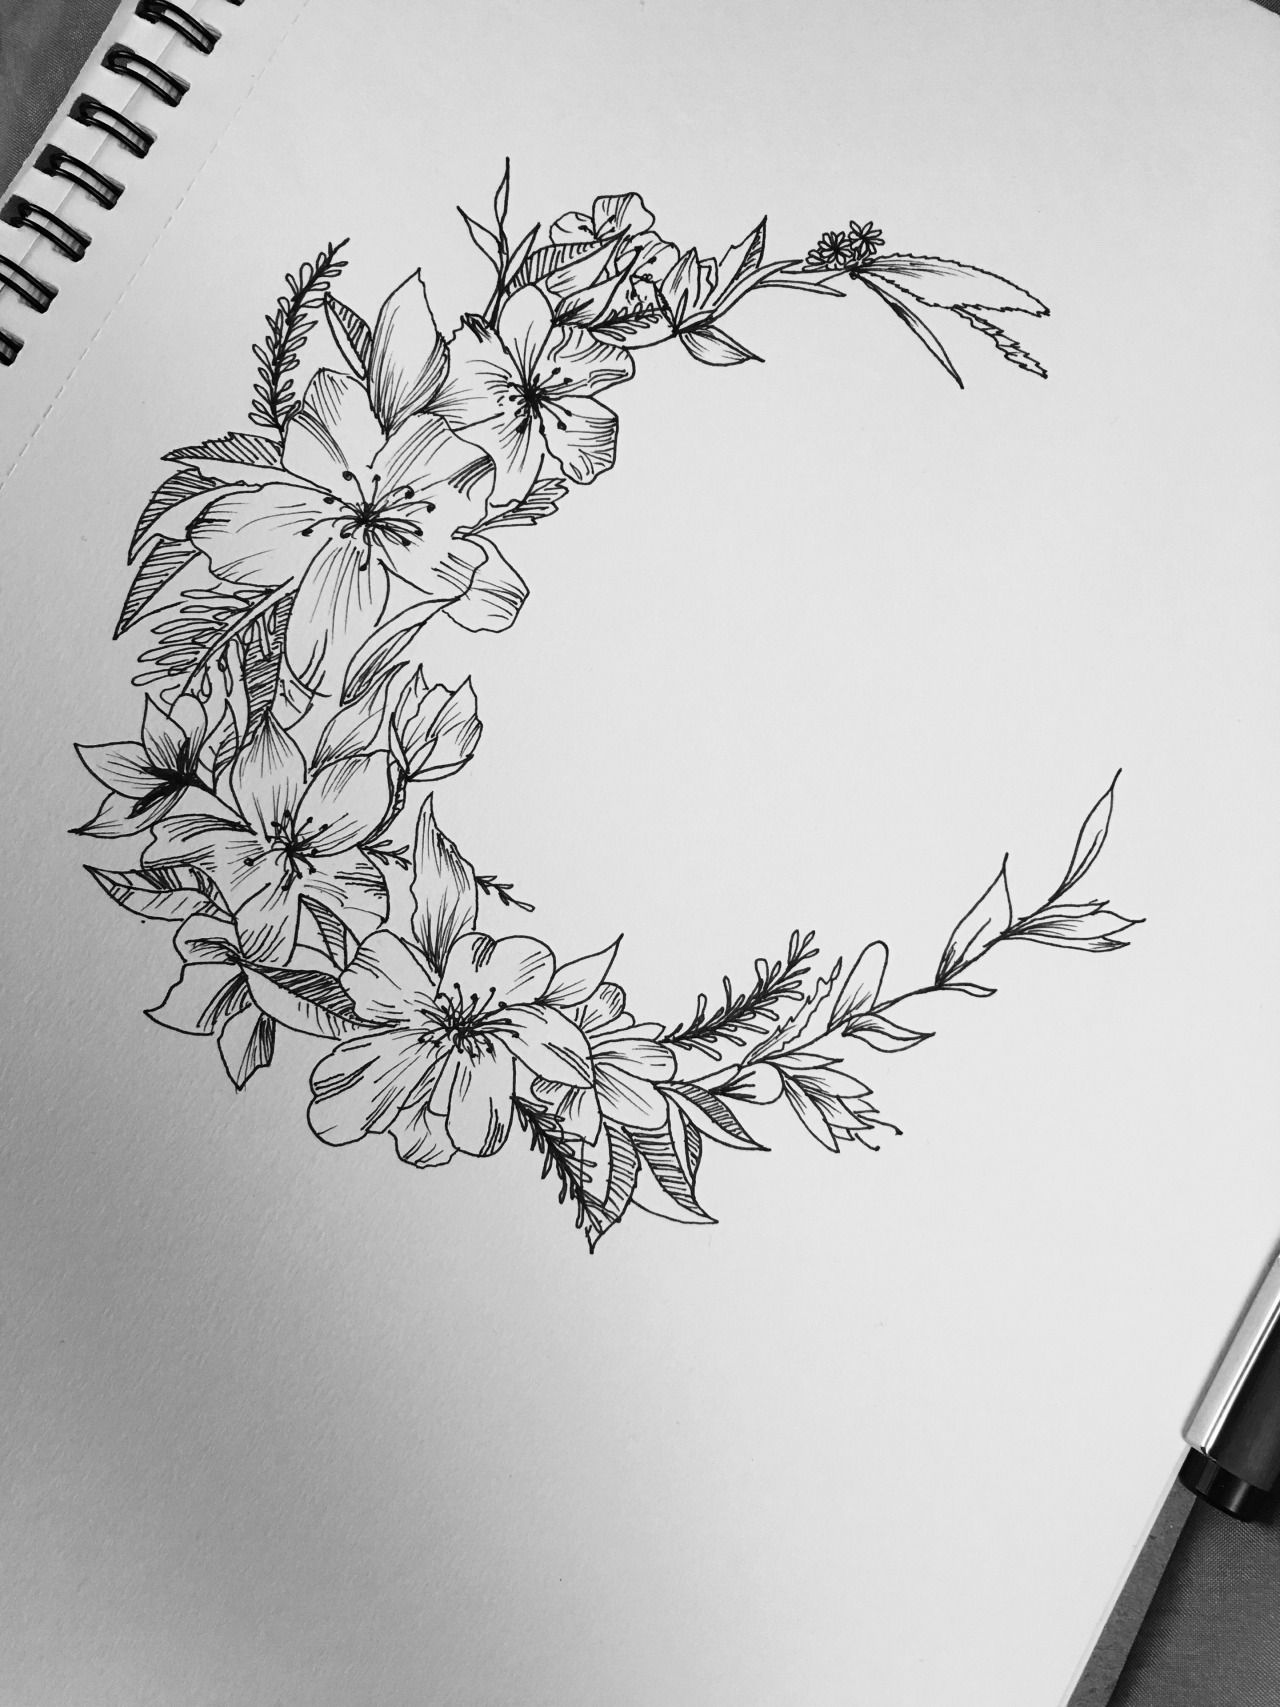 This ones for me floral moon design tattoos for days for Moon architecture